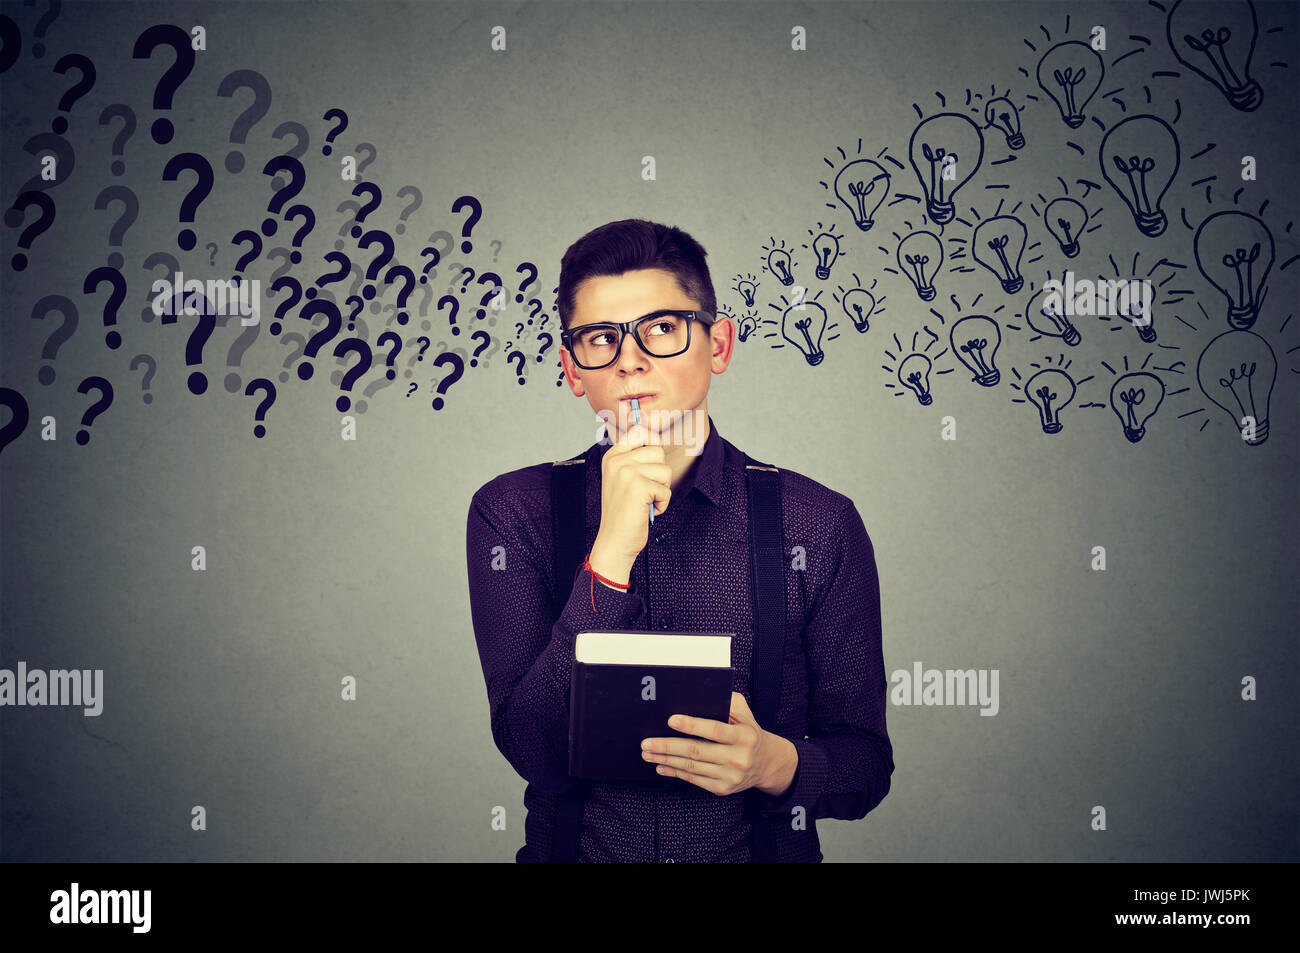 Man finding answers to many questions generating ideas - Stock Image